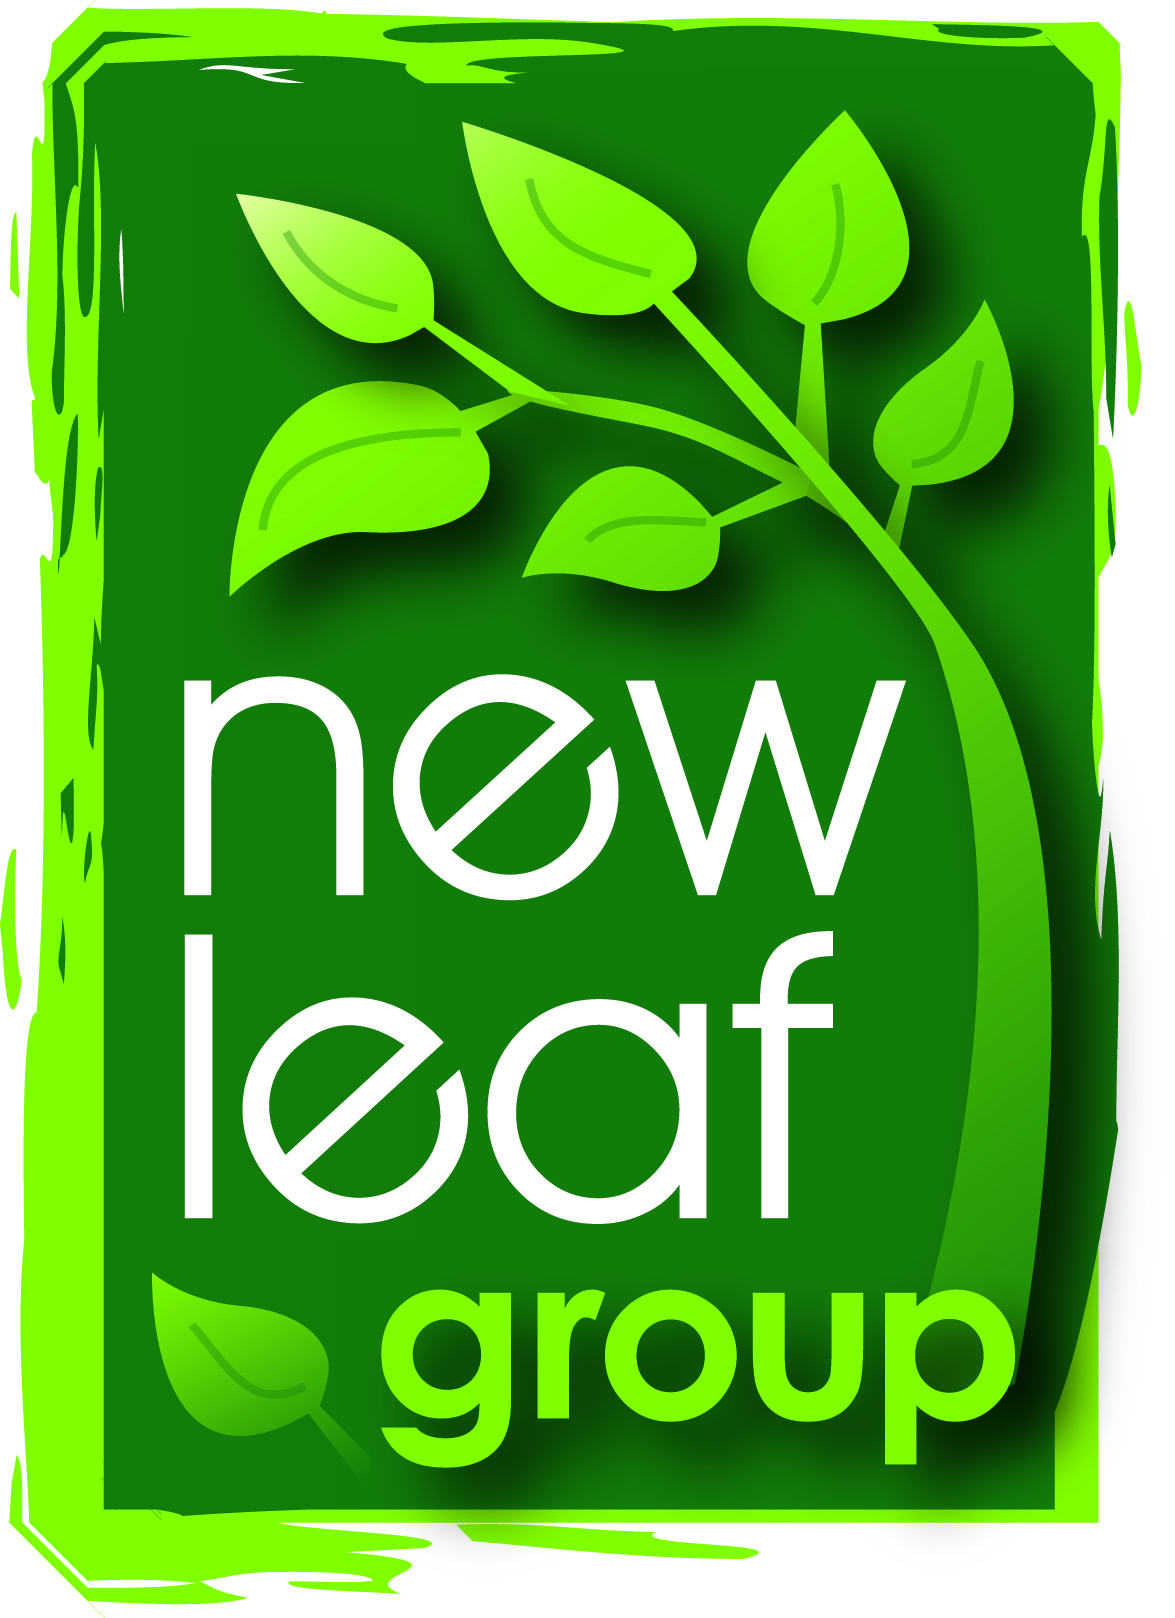 New Leaf Healthy Vending Organic Food Albany Troy Latham Saratoga Catskill Massachusetts